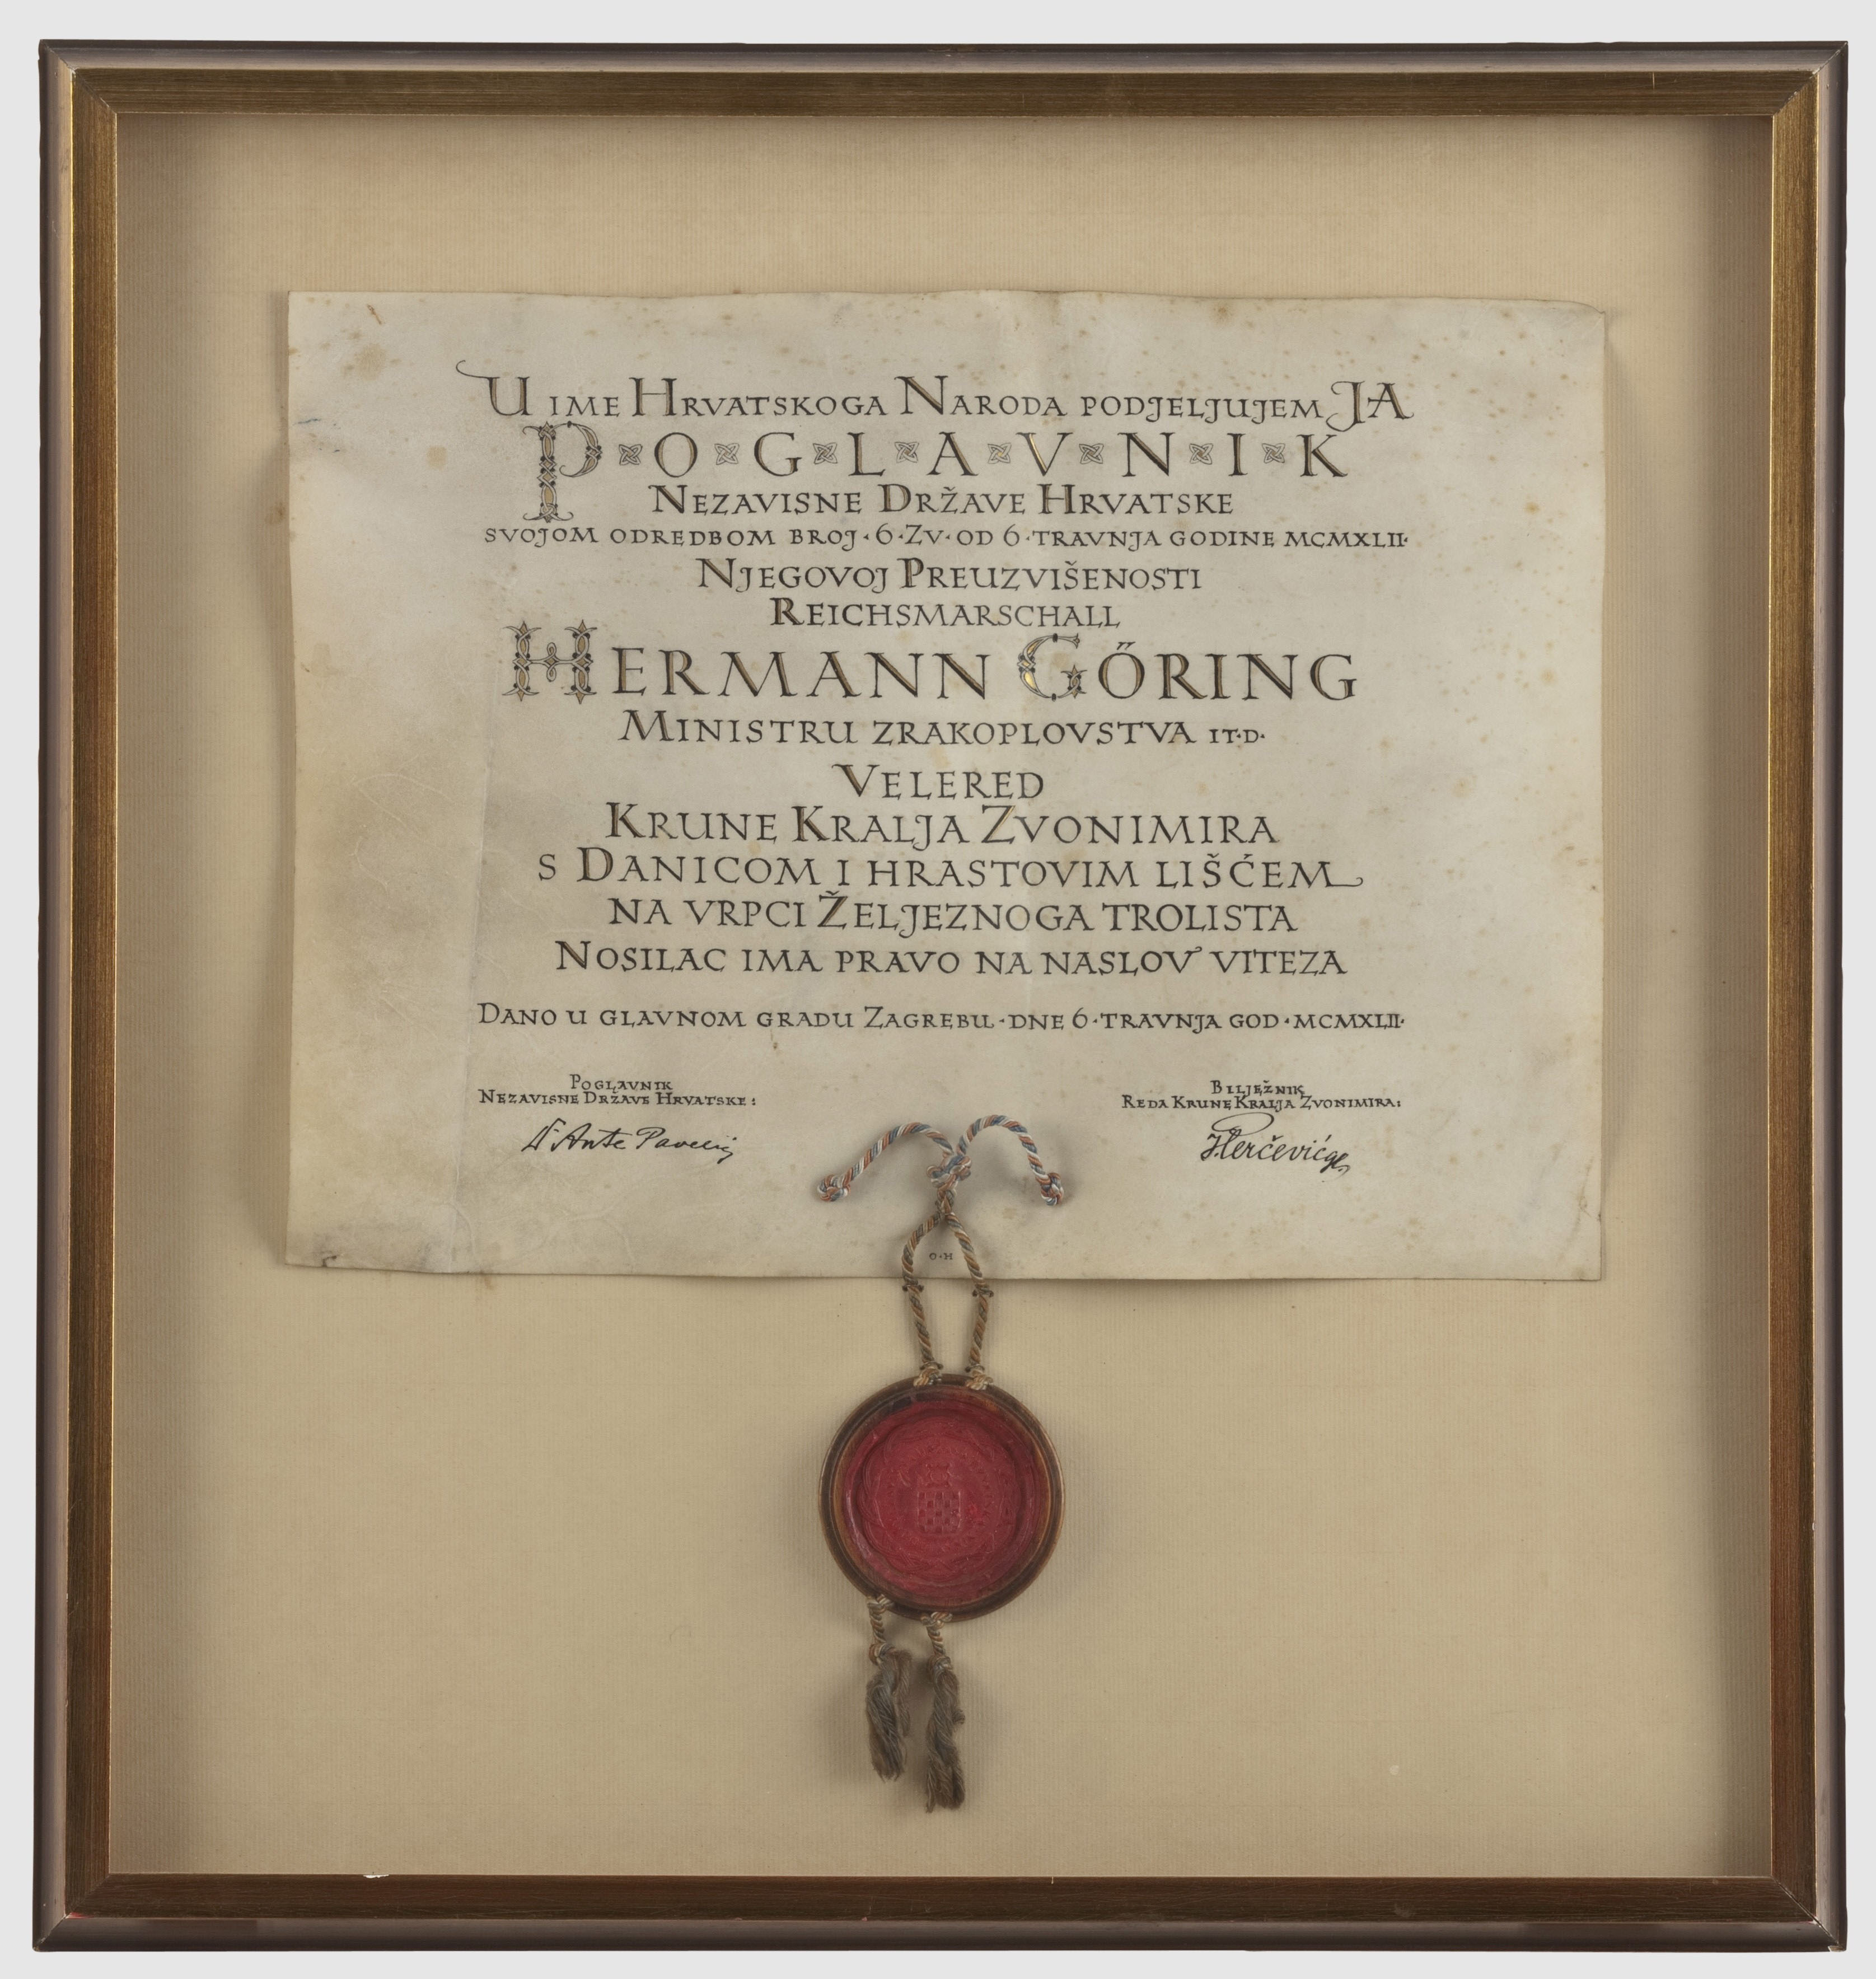 Hermann Goering, Award Document for the Grand Cross Set of the Order of the Crown of King Zvonimir with Oak Leaves Parchment with gold dÚcor and calligraphy in black India ink, the award text in Croatian dated 6 April 1942. Signed by Poglavnik Ante Pavelic and the Orders Chancellor Ivan Percevic. State seal in red wax appended to the lower edge in a wooden seal capsule (cover missing) with red-white-blue cording. Folded at one point in time, framed and under glass, 57.5 x 60 cm,, Image: 148242540, License: Rights-managed, Restrictions: , Model Release: no, Credit line: Profimedia, Alamy